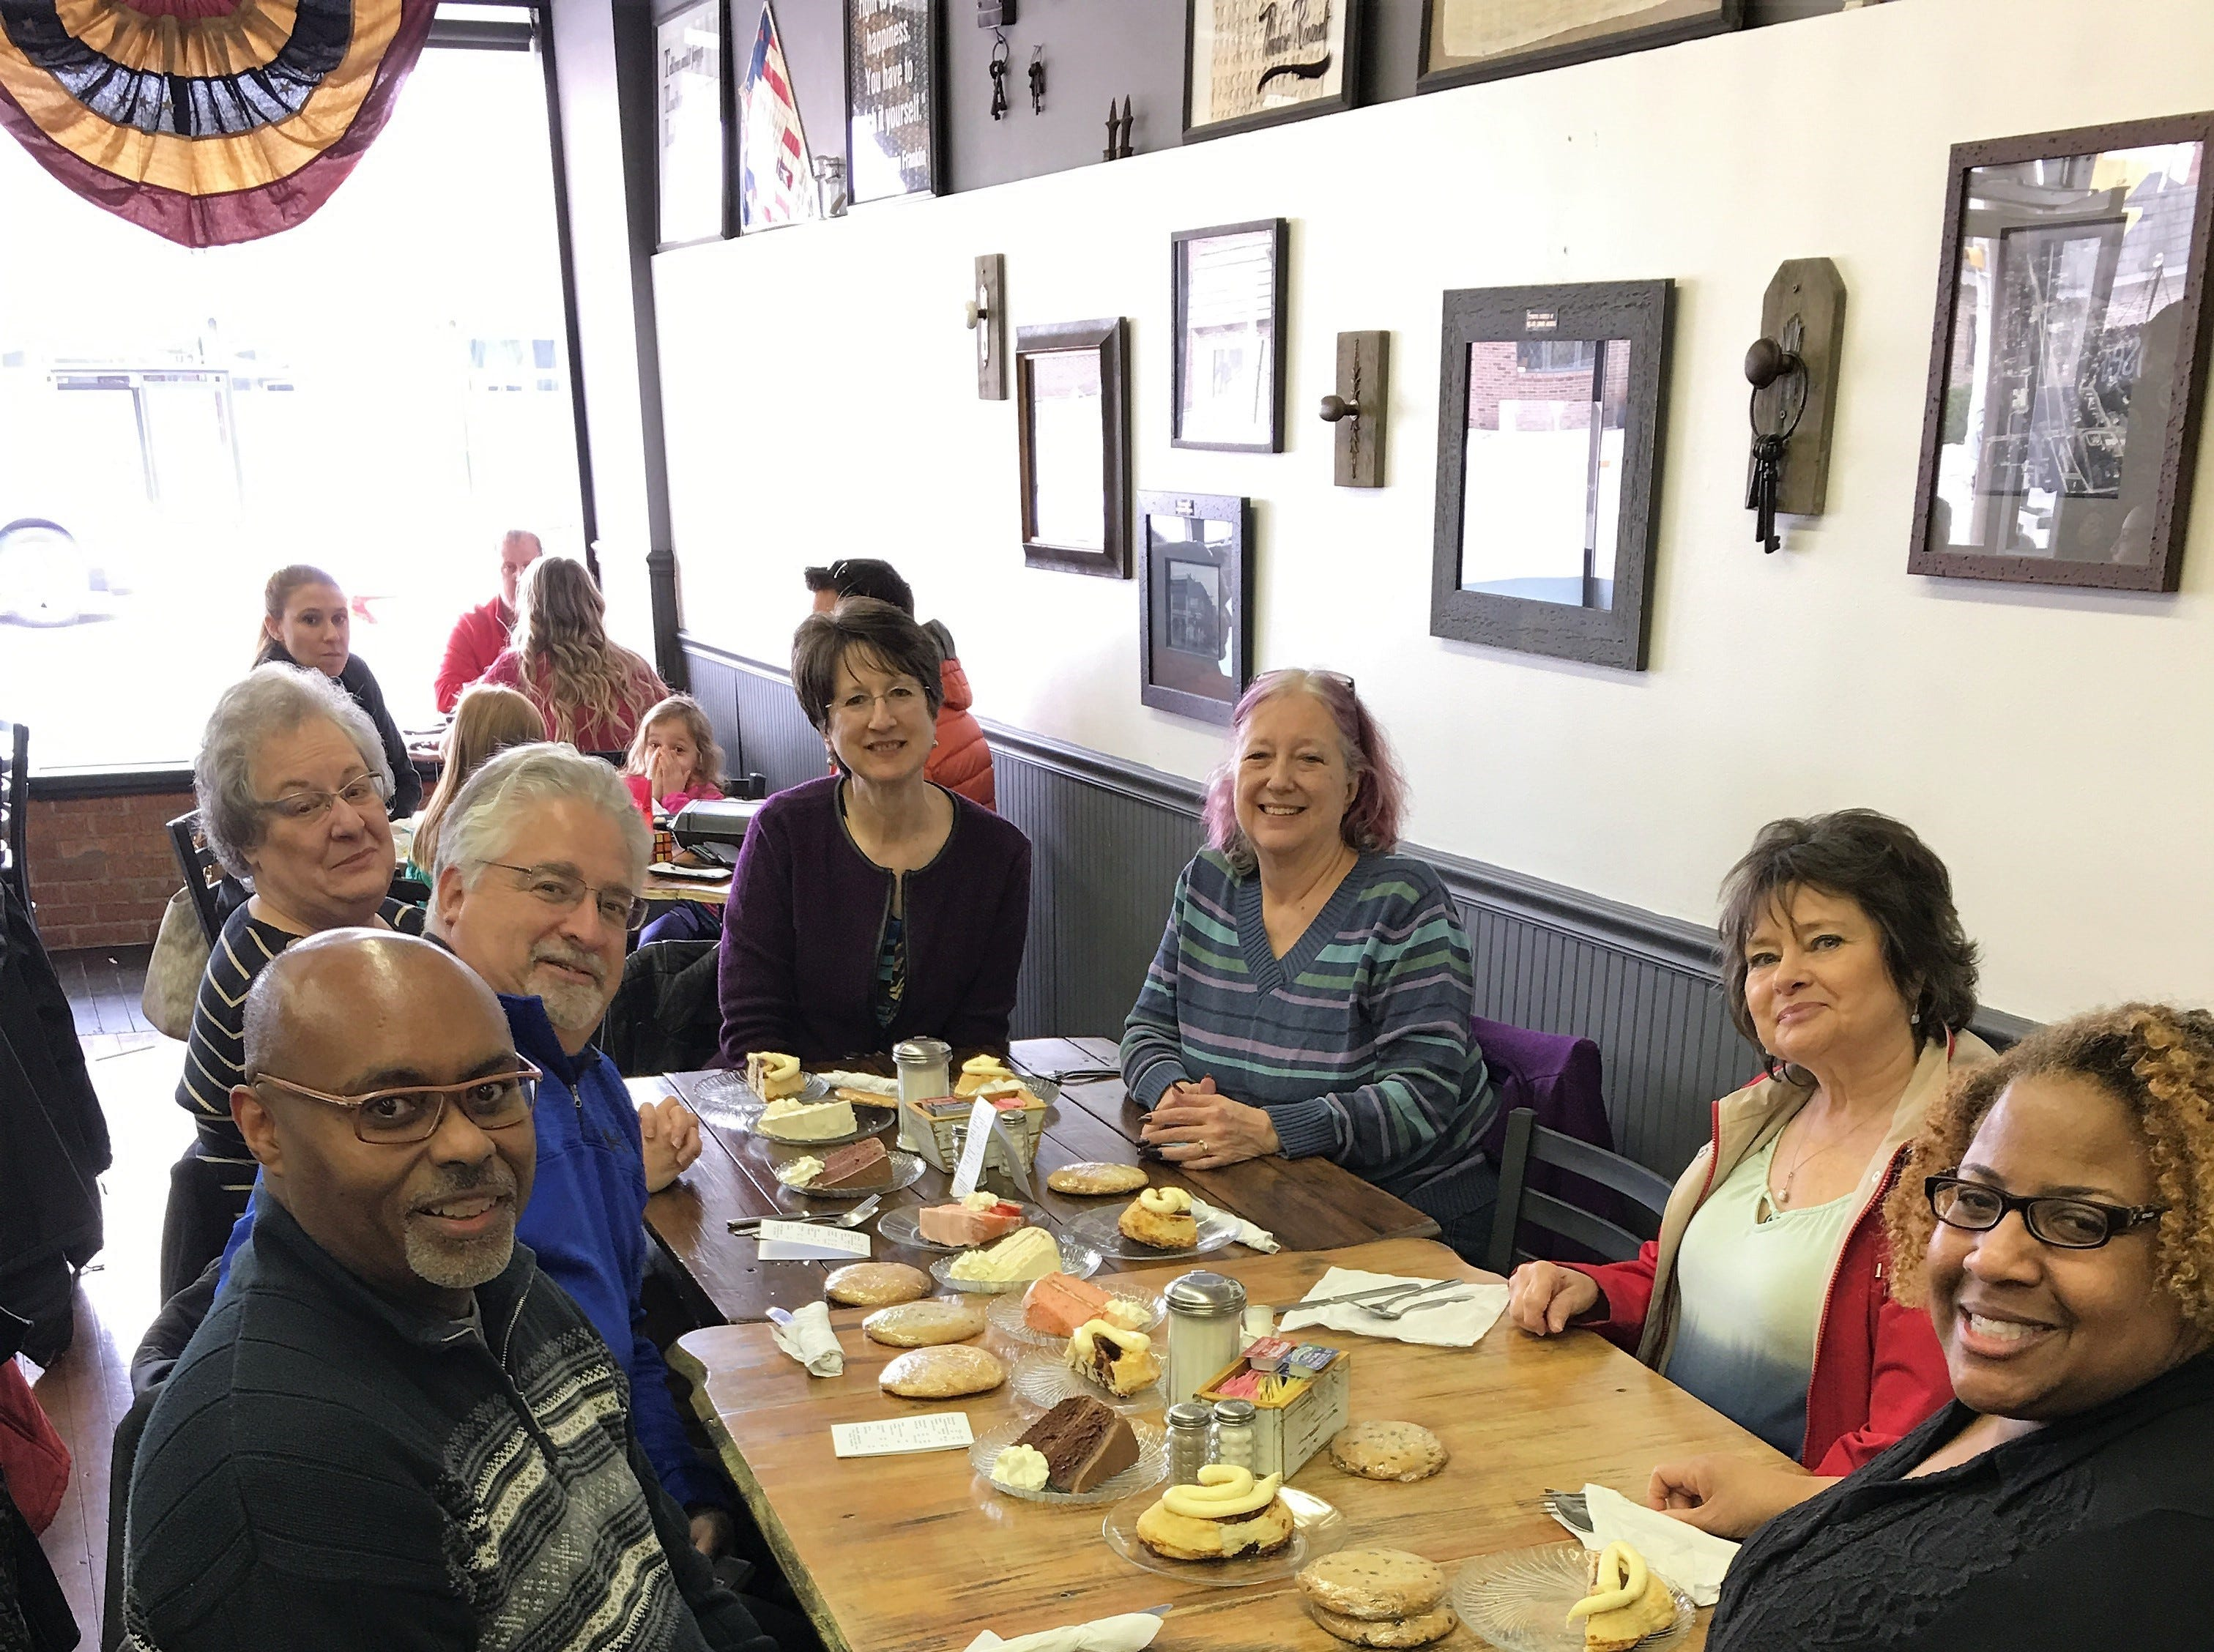 An Evansville Culinary Tours group enjoying Kite and Key desserts.